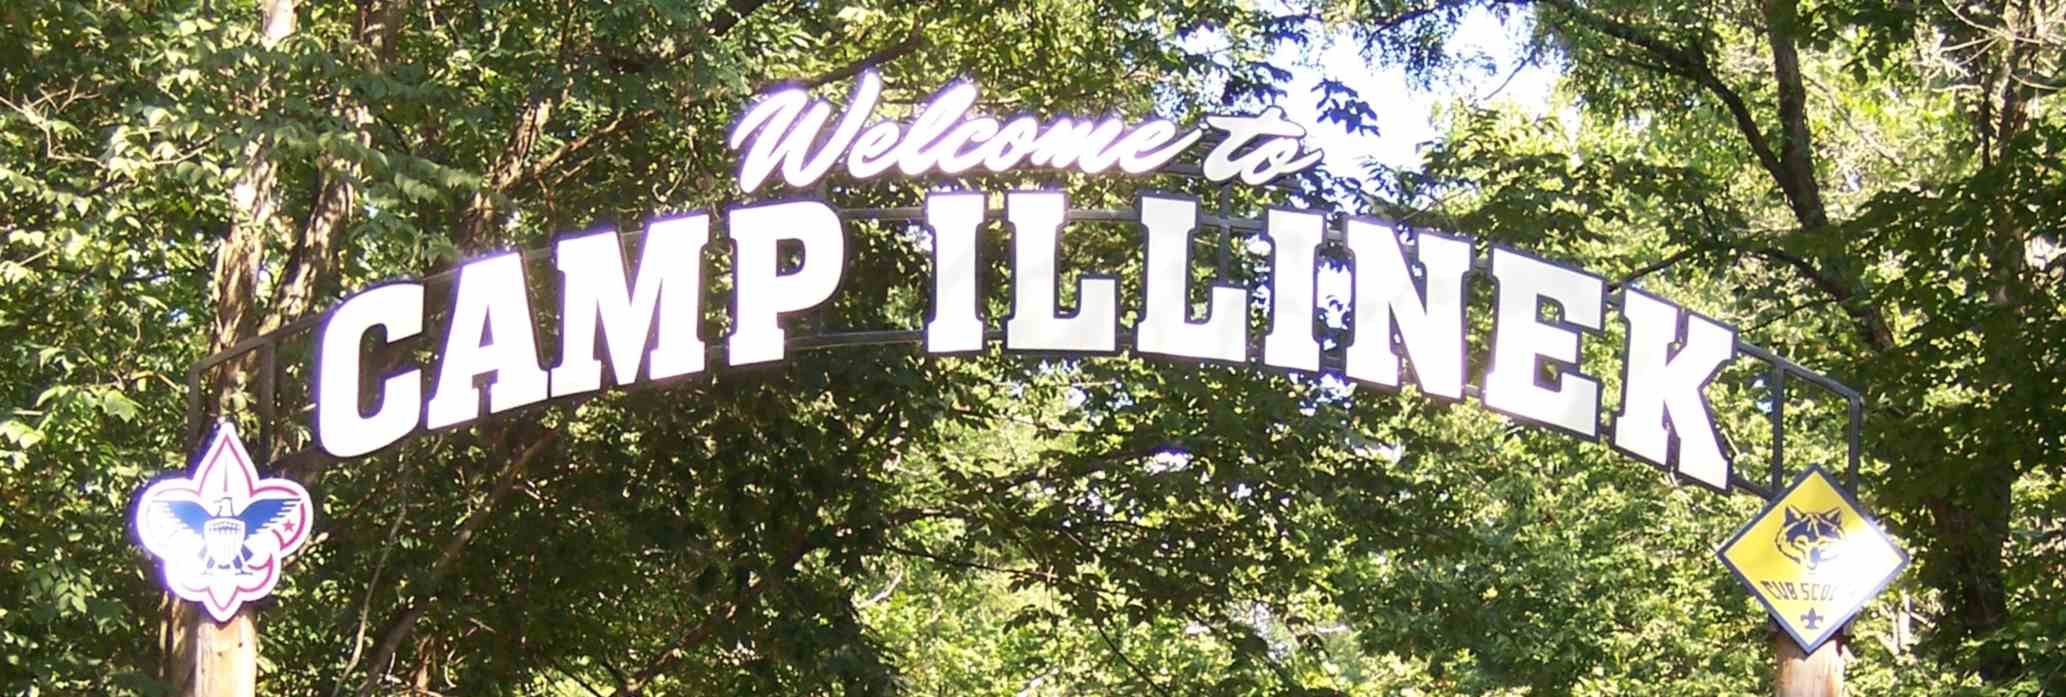 Image result for camp illinek springfield il